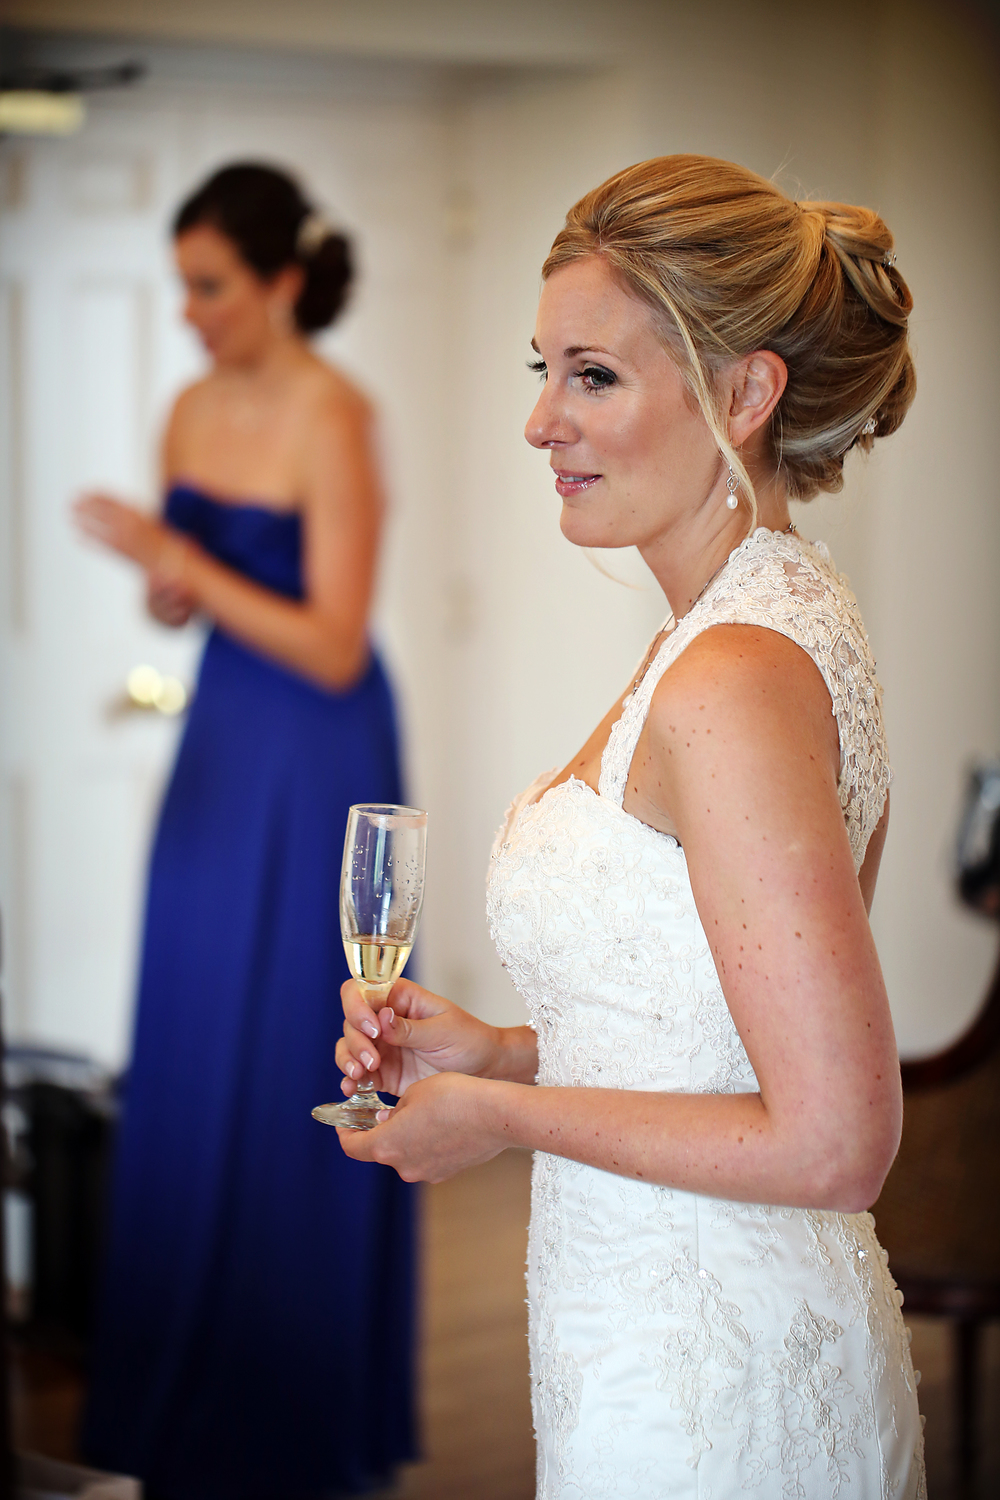 Wedding Hair Up At Bottleysd Mansion, surrey